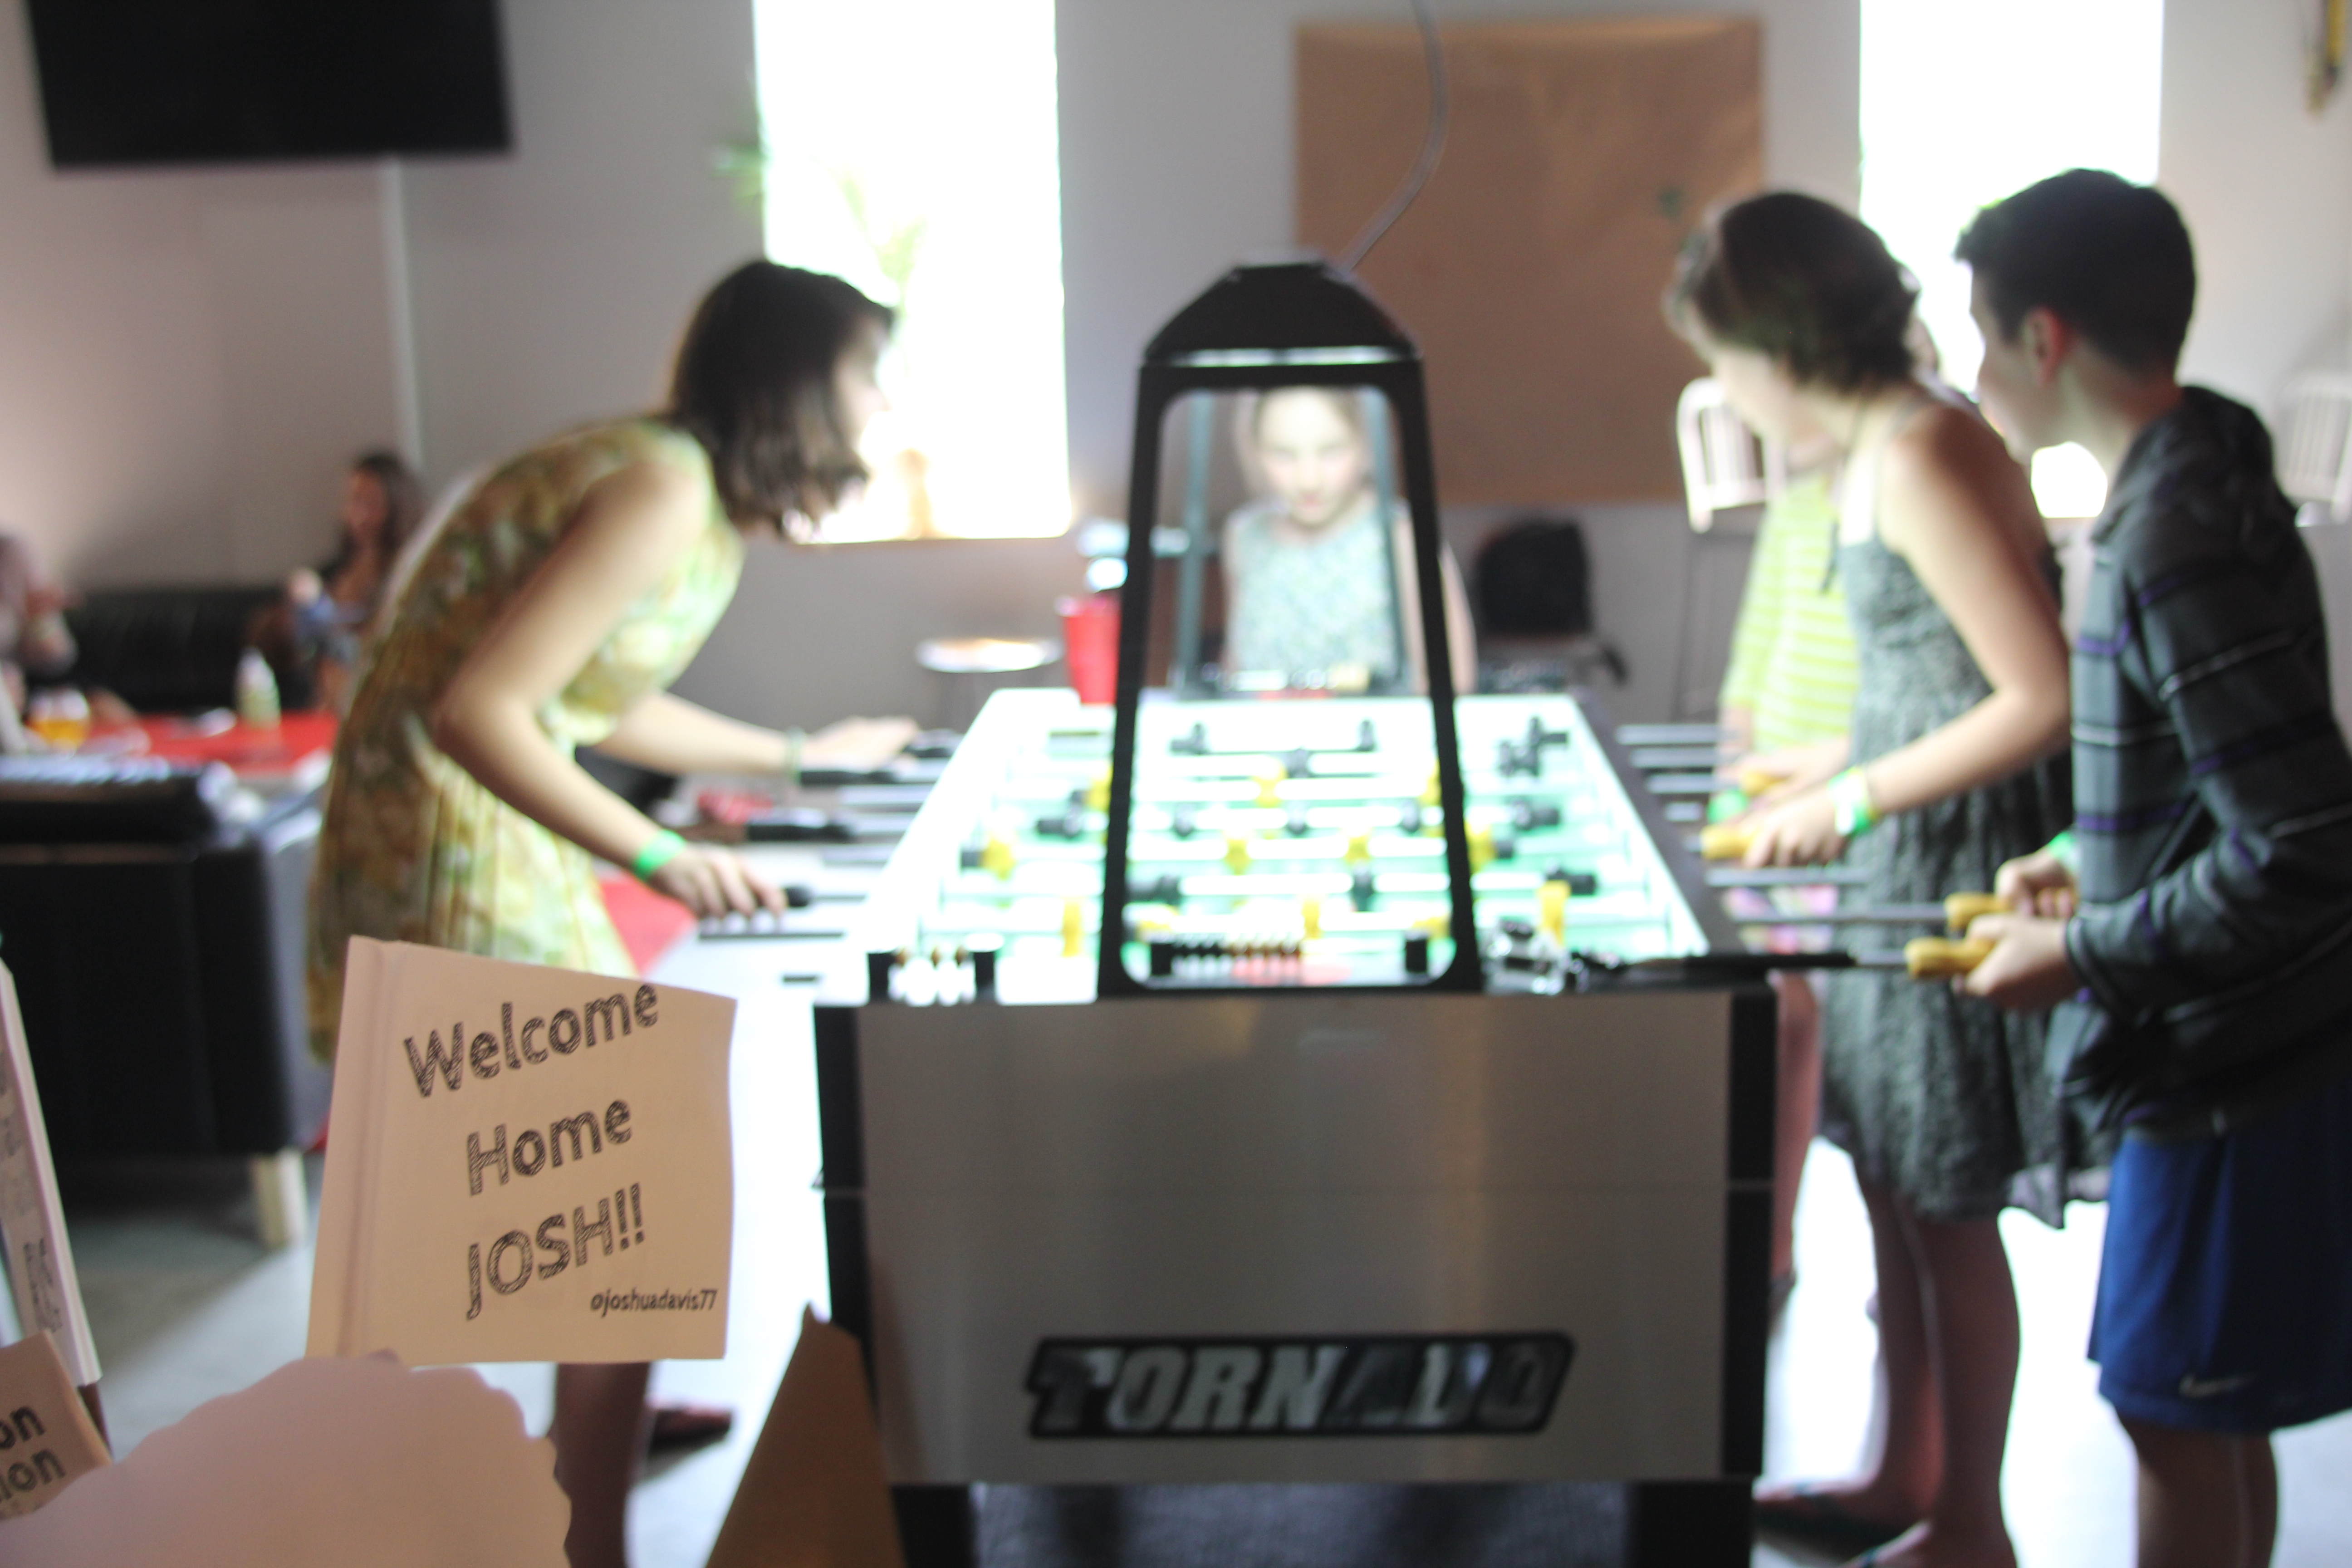 Foosball Table Children Tahlia Davis Nadia Moehle Sonja Sunny Moehle The Workshop Brewing Company #davisNation Traverse City Joshua Davis NBC The Voice Homecoming Party